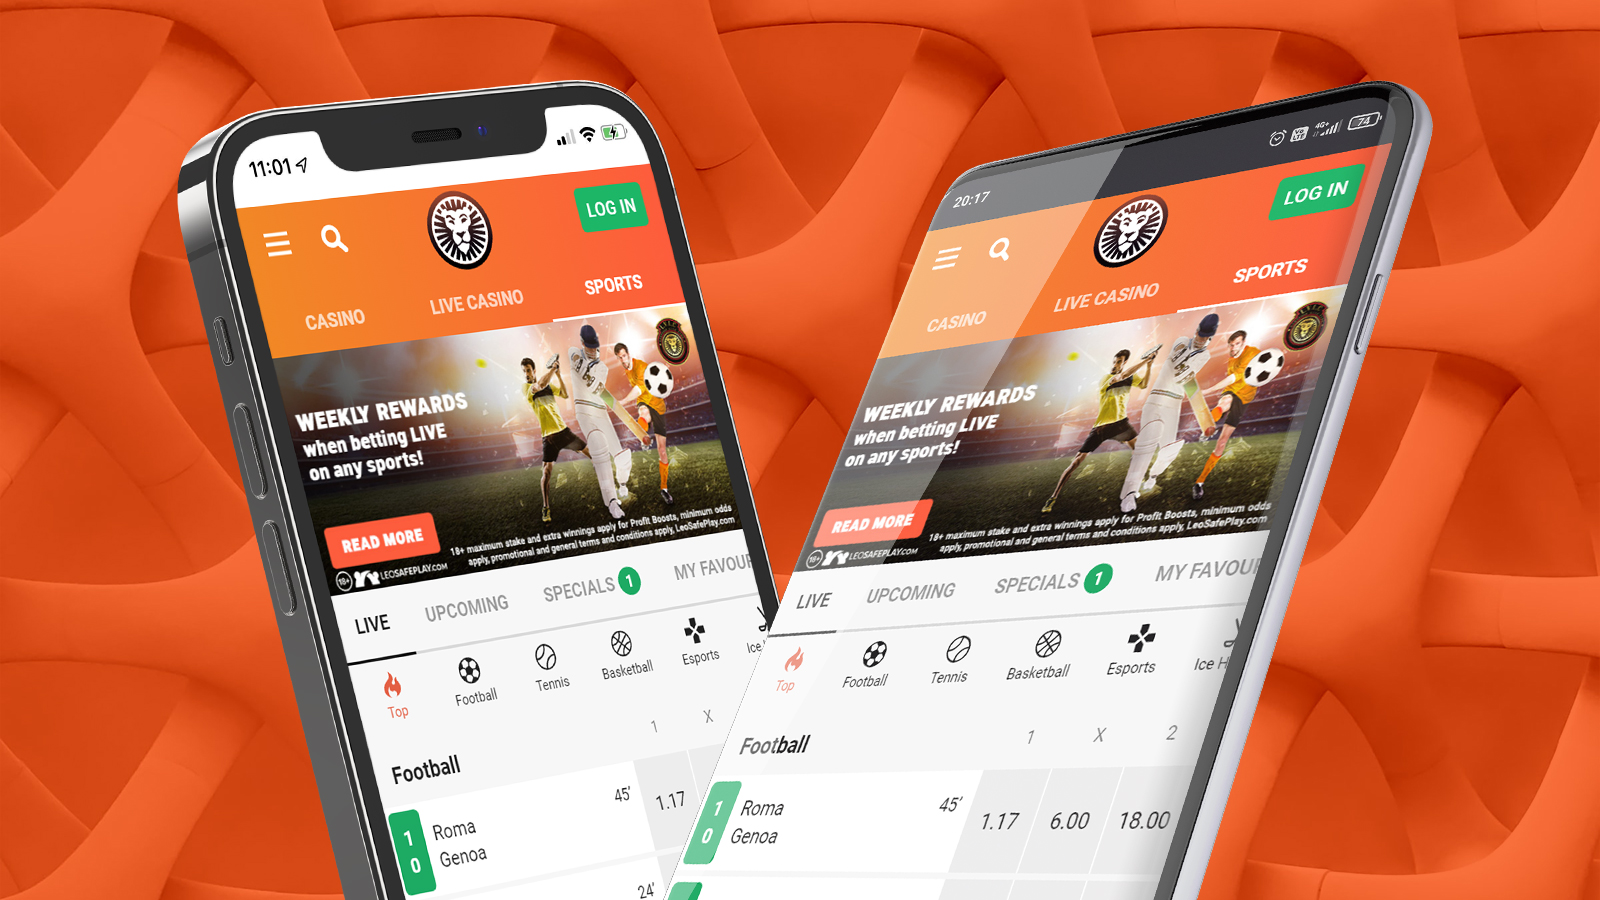 Cricket betting app allows you to palce bets whenever you want.